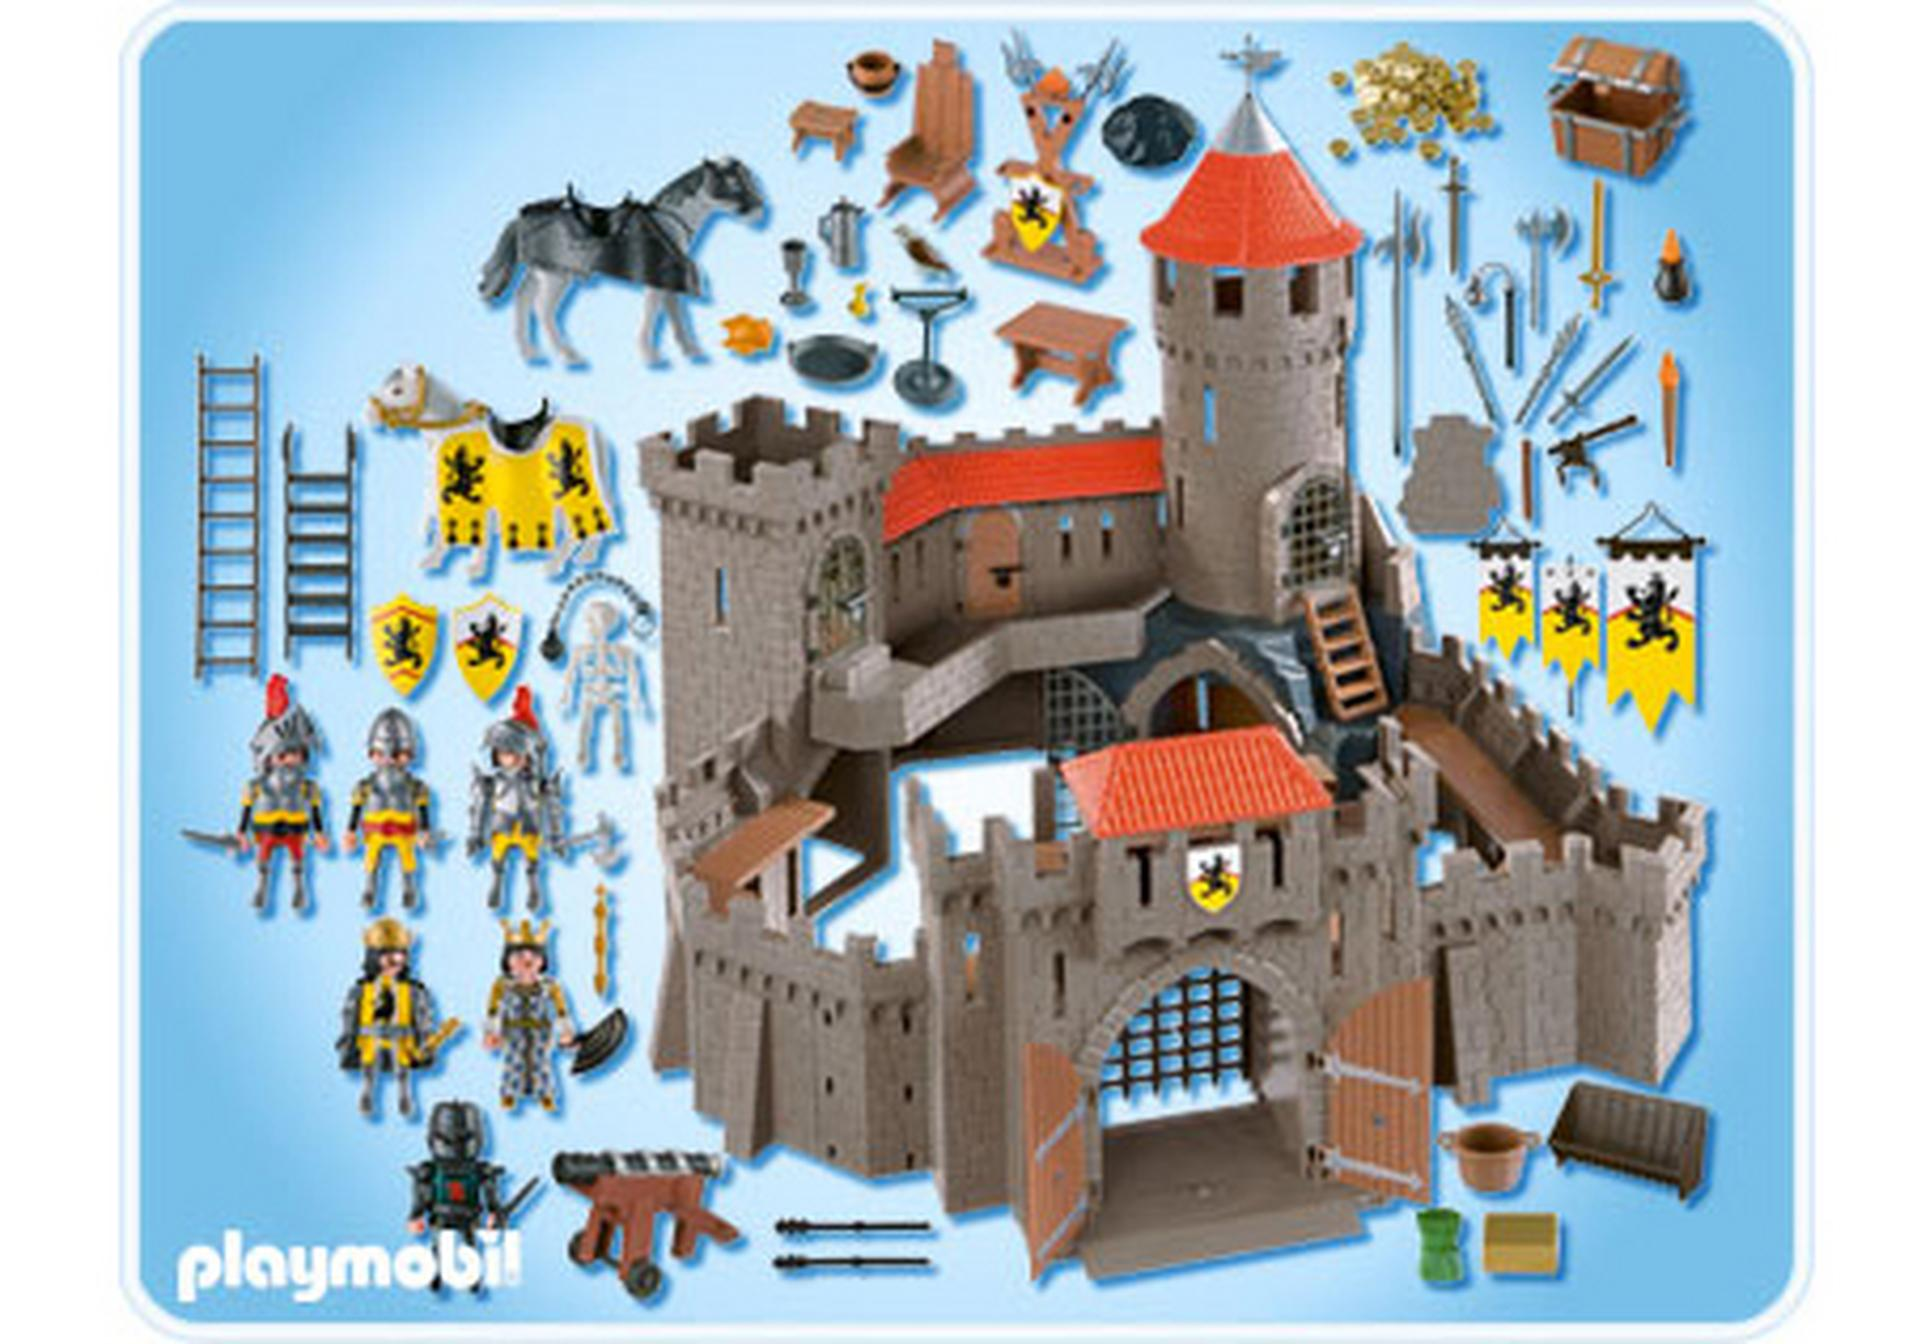 Ch teau fort des chevaliers du lion 4865 a playmobil for Plan chateau fort playmobil